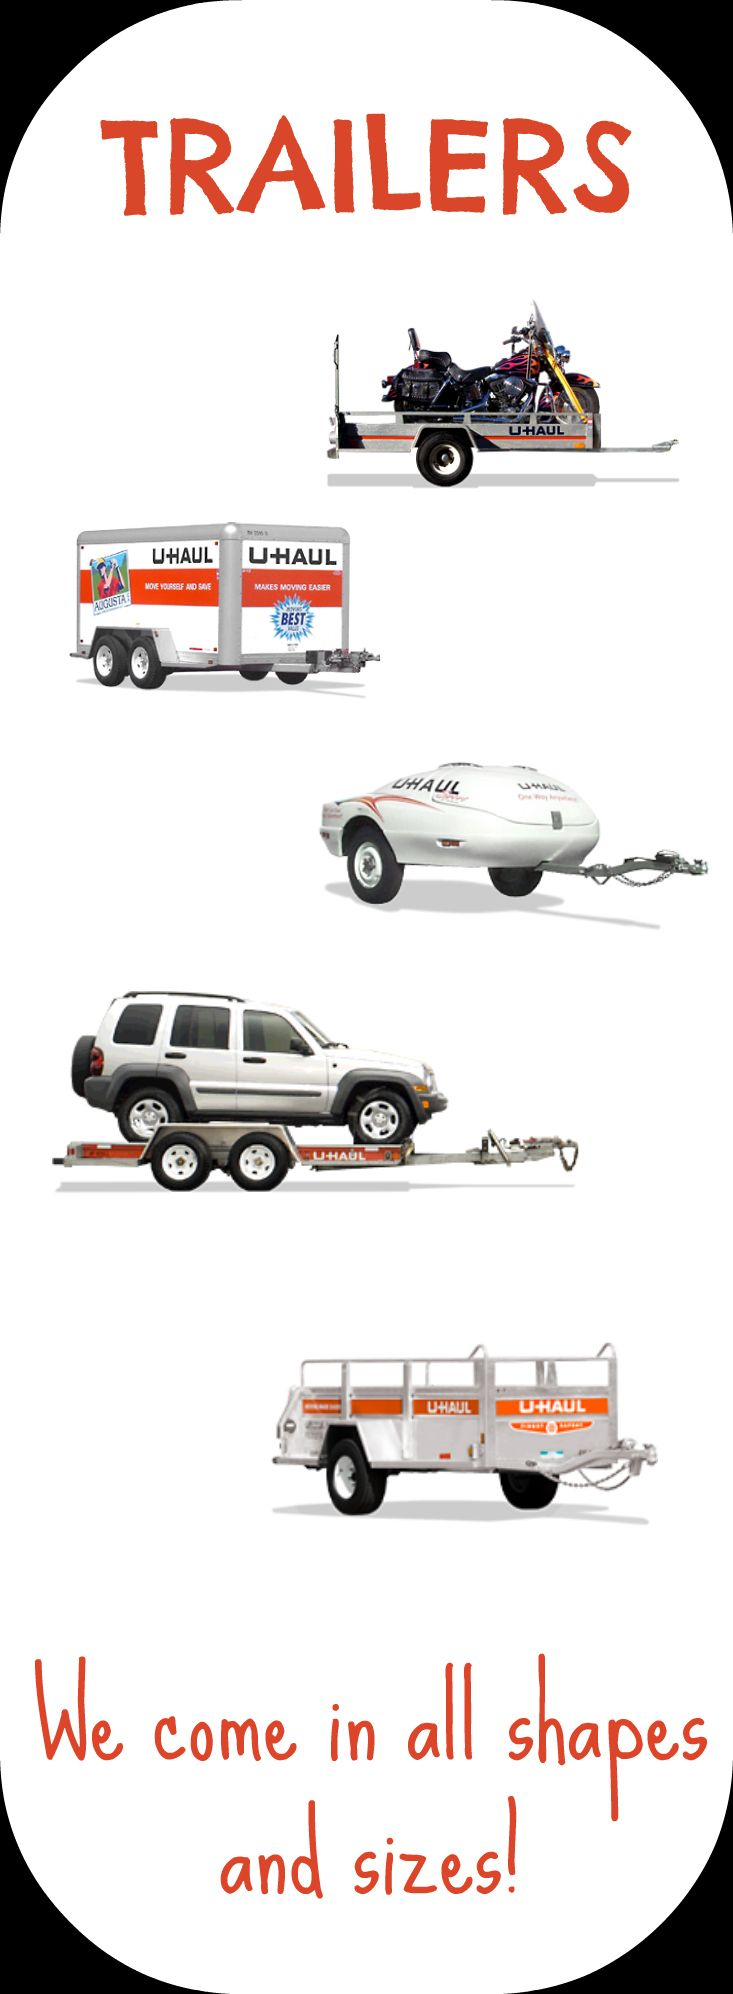 Vehicle Transport Quote How To Strap The Tires Of A Car On A Flatbed Trailer  Transport